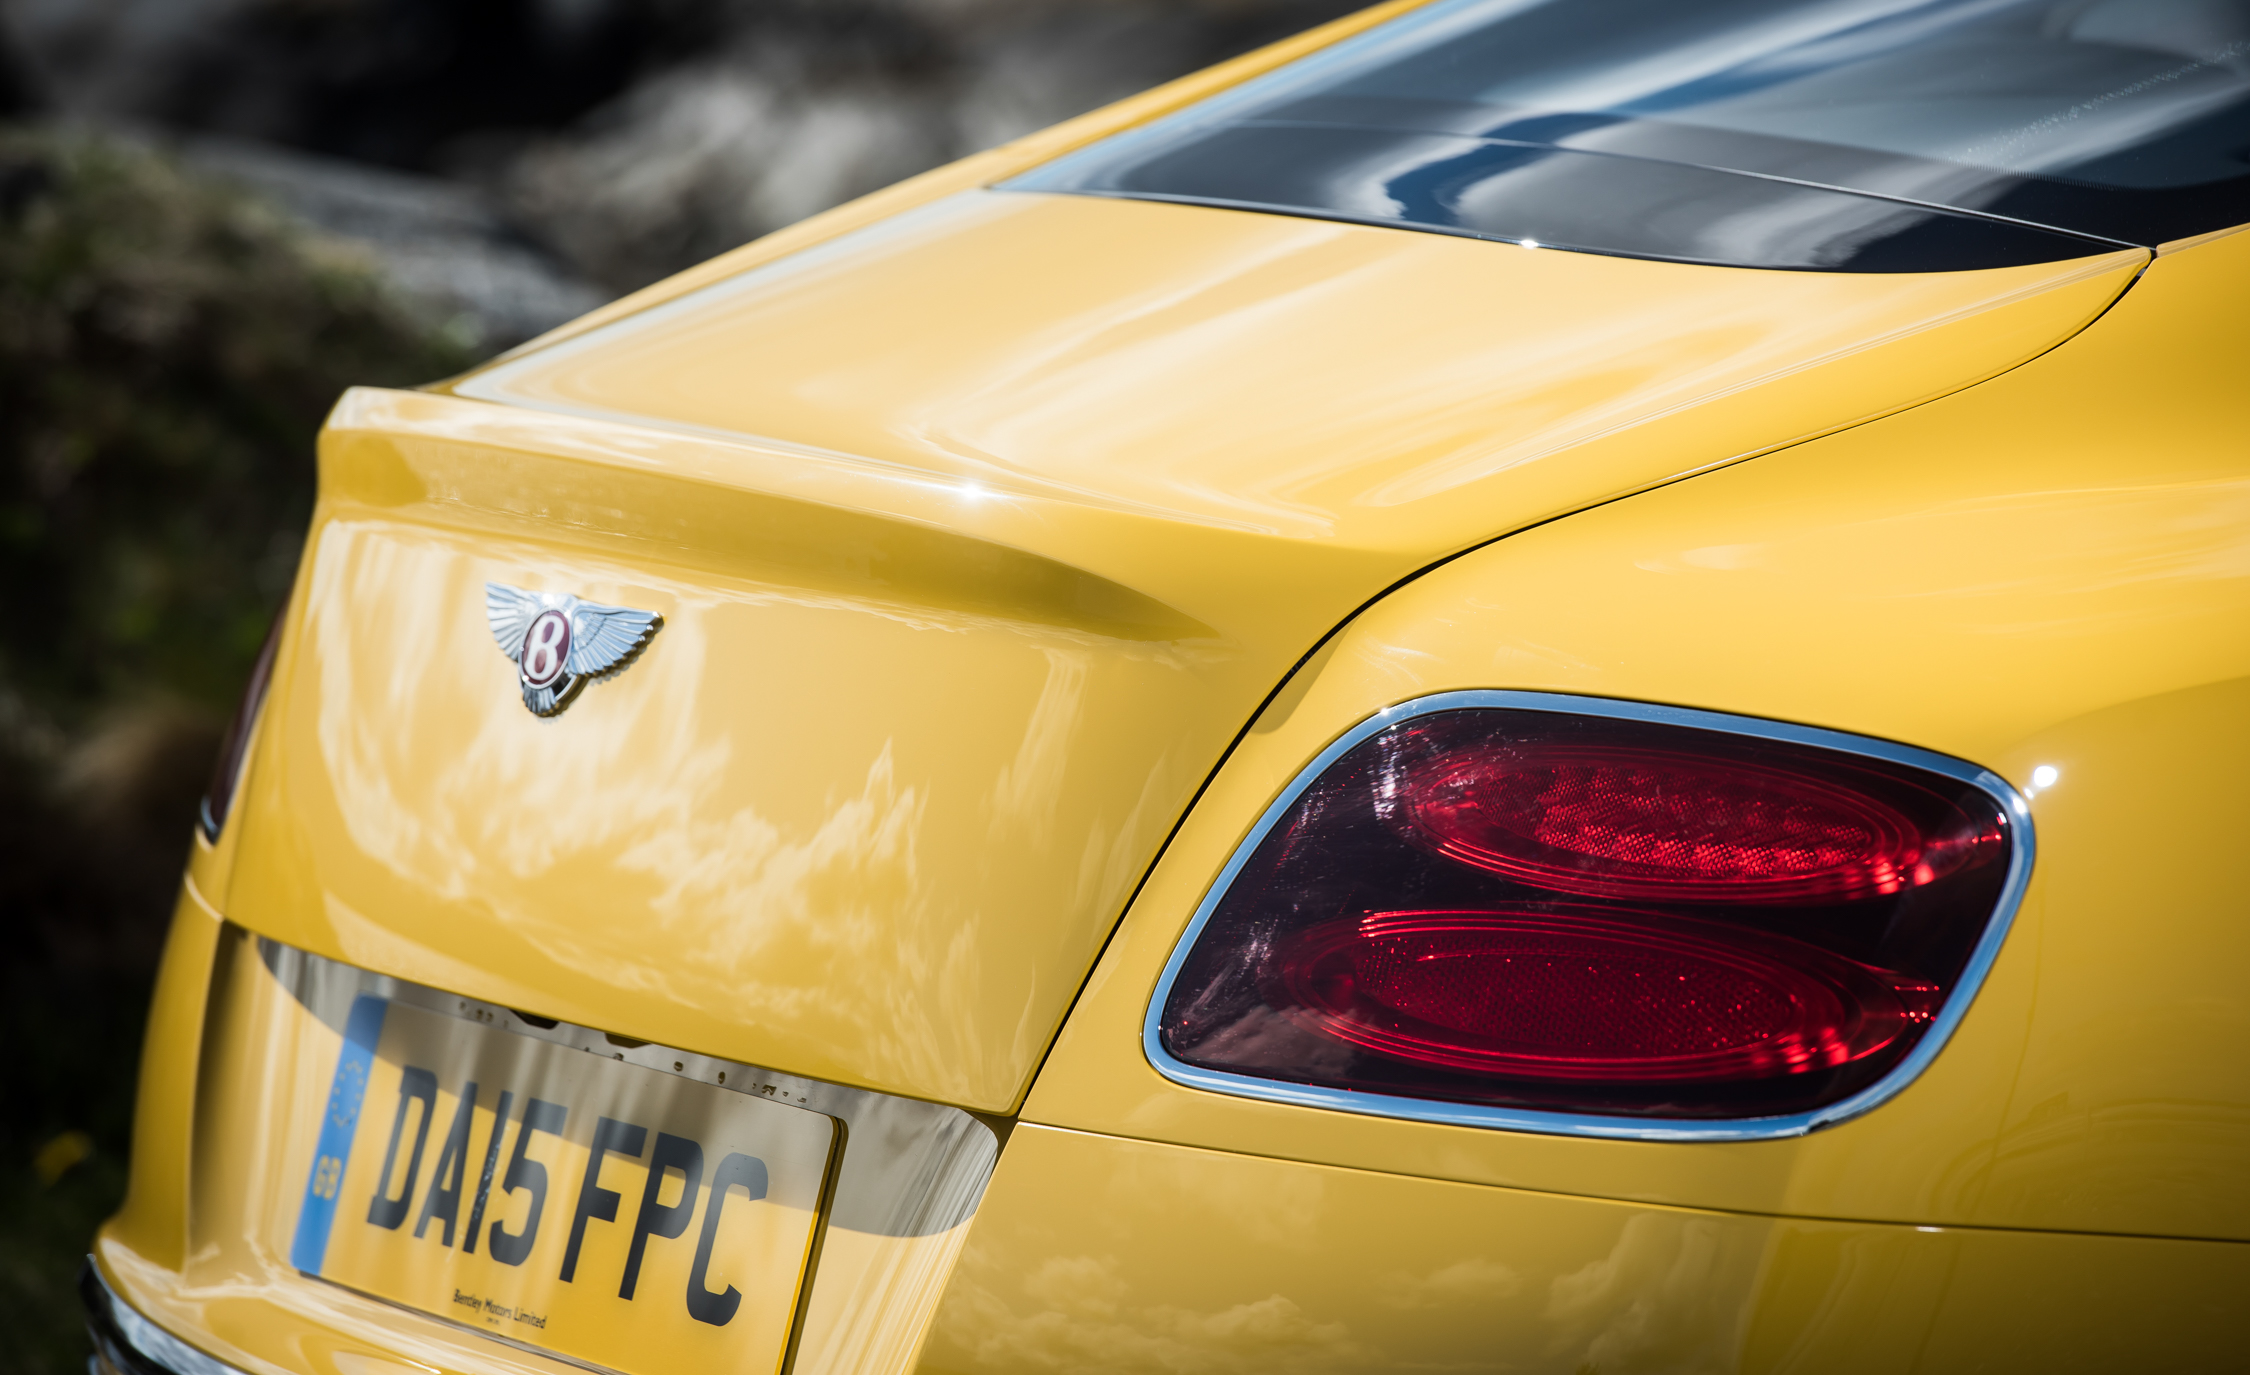 2016 Bentley Continental GT S Exterior Taillight